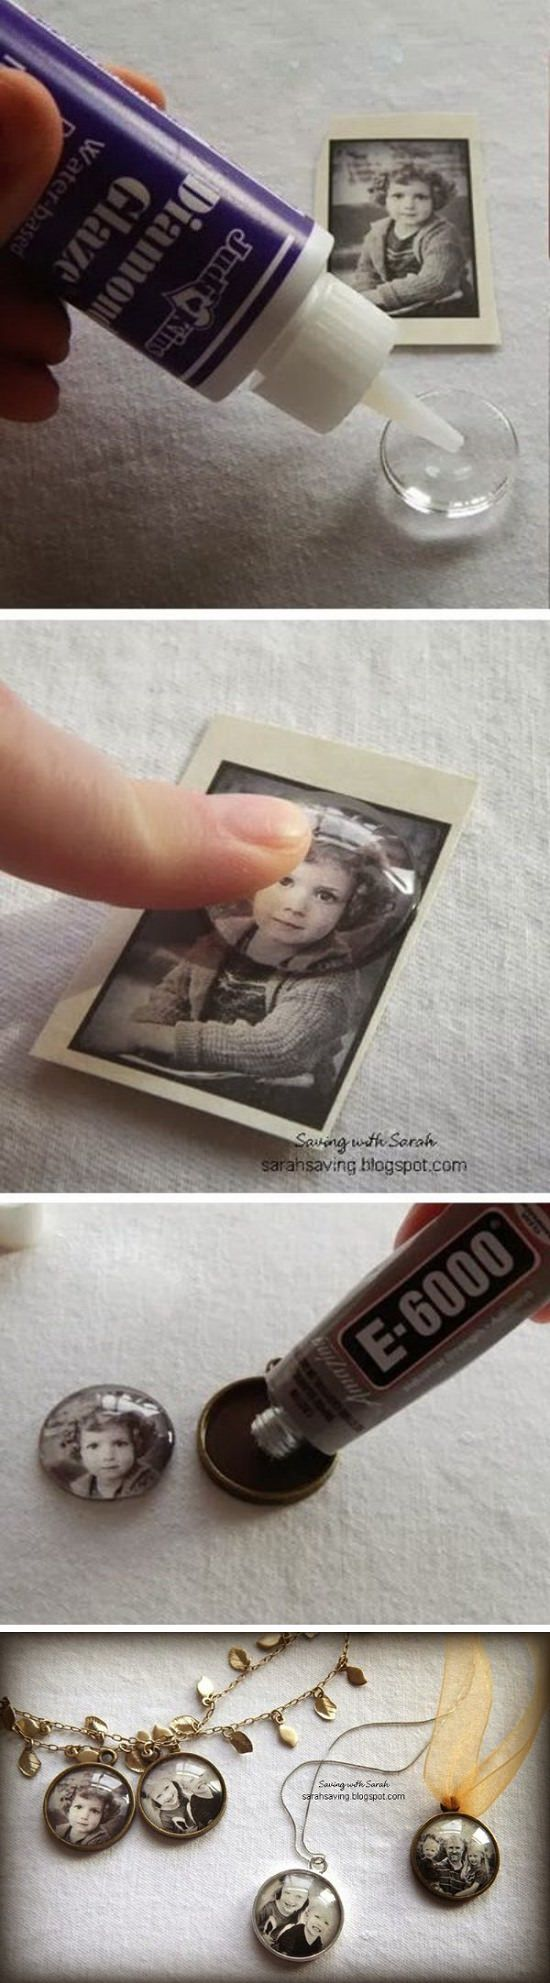 DIY Photo Craft Ideas 14